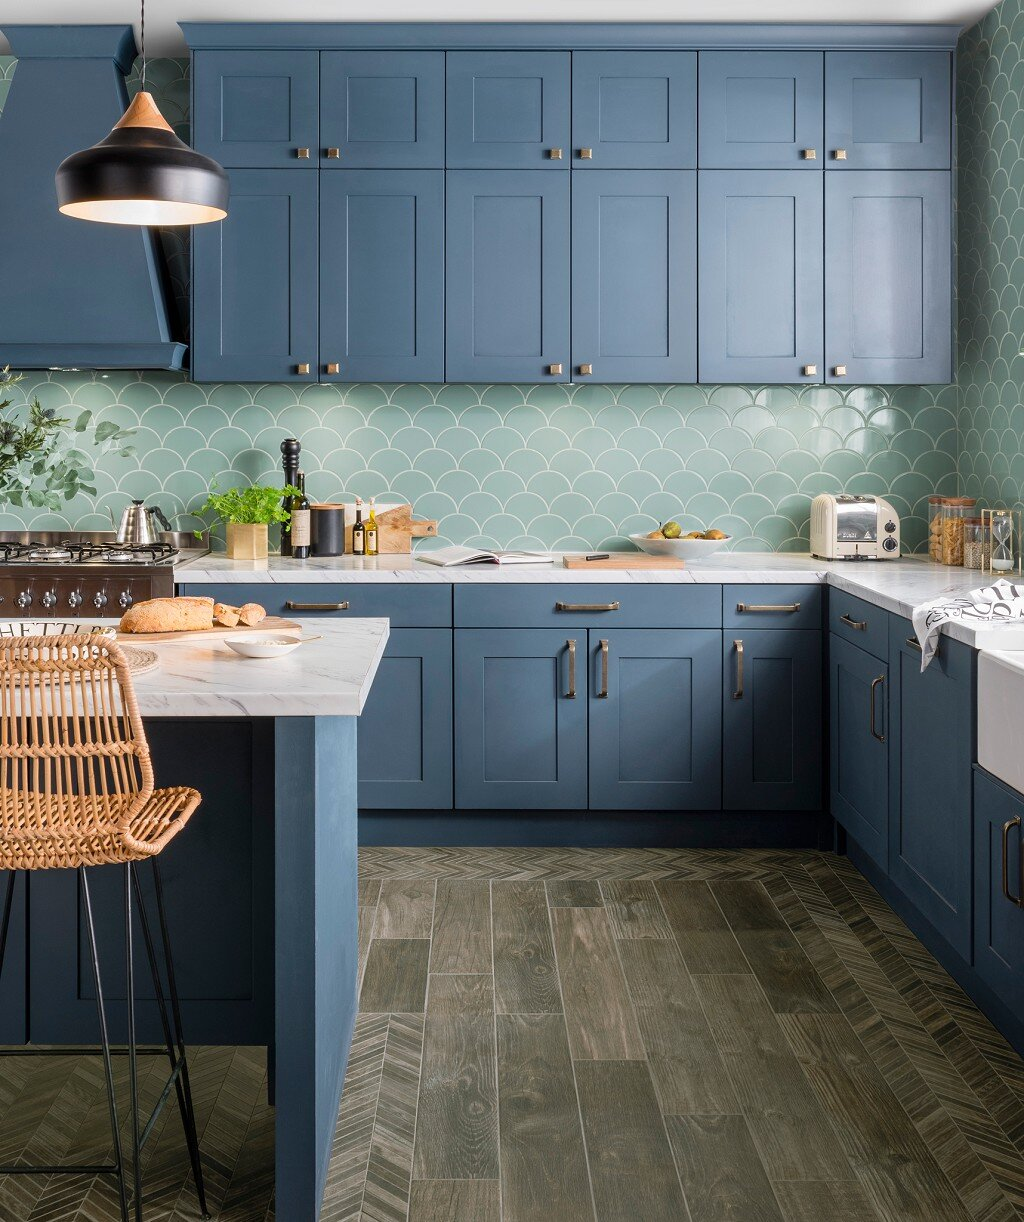 Fresh Sage  in the kitchen with stunning blue kitchen cabinets. Credit:  Topps Tiles